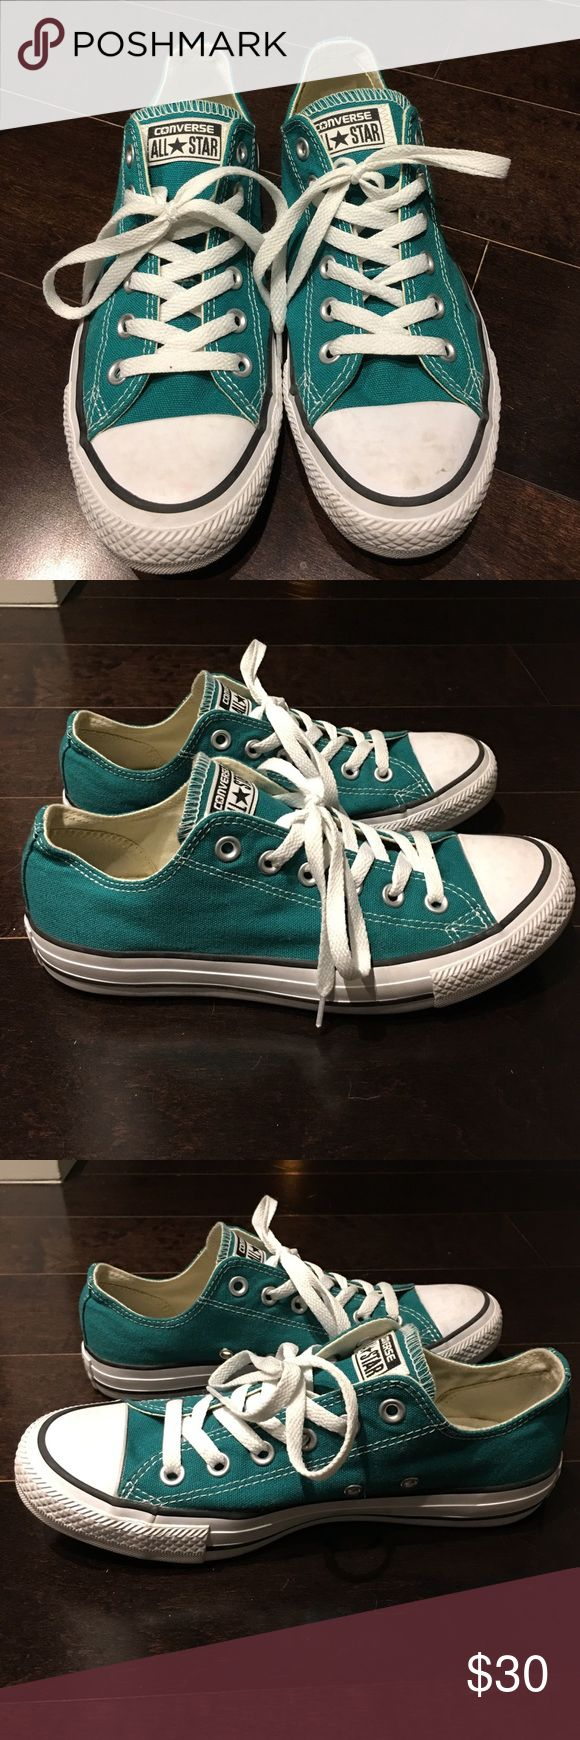 """Converse Women's Chuck Taylor Sneakers, Size 8 Classic Converse Women's Chuck Taylor Sneakers. Size 8. The color is """"rebel teal/white/black"""". Excellent, like new condition--literally worn once, as you can see from the photos. Retail $54.99! Converse Shoes Sneakers"""